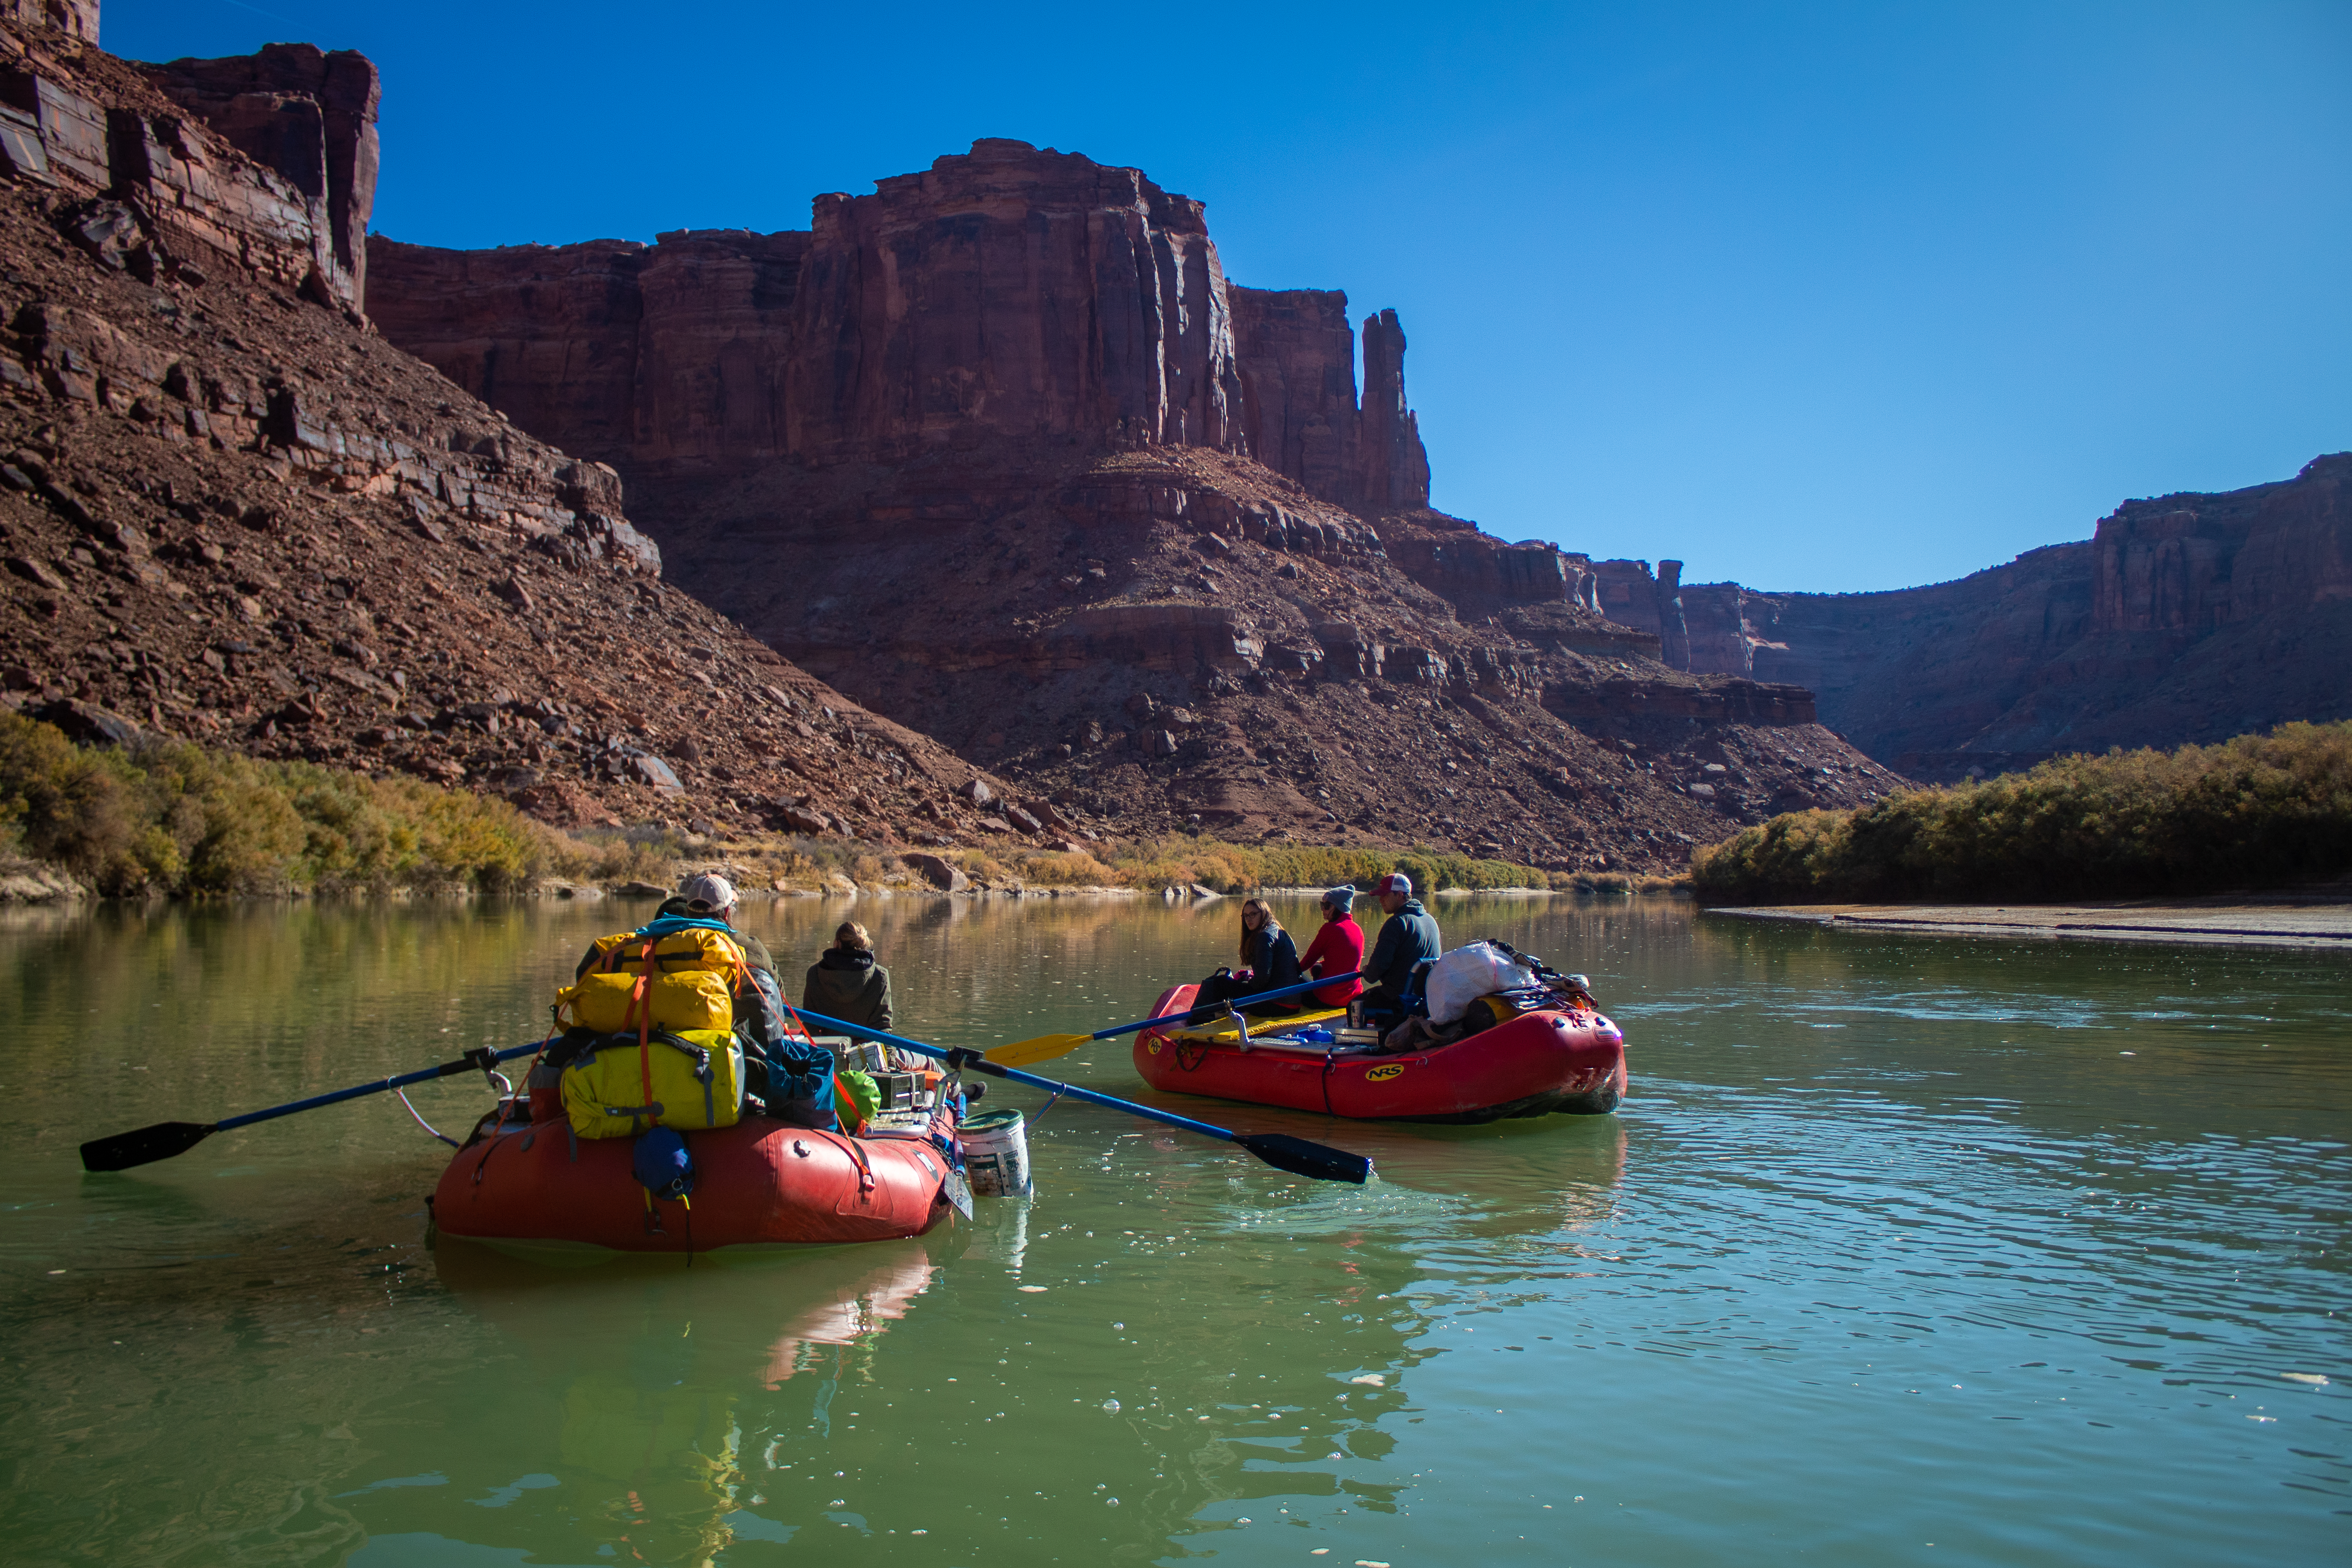 raft trip leader boating labyrinth canyon green river